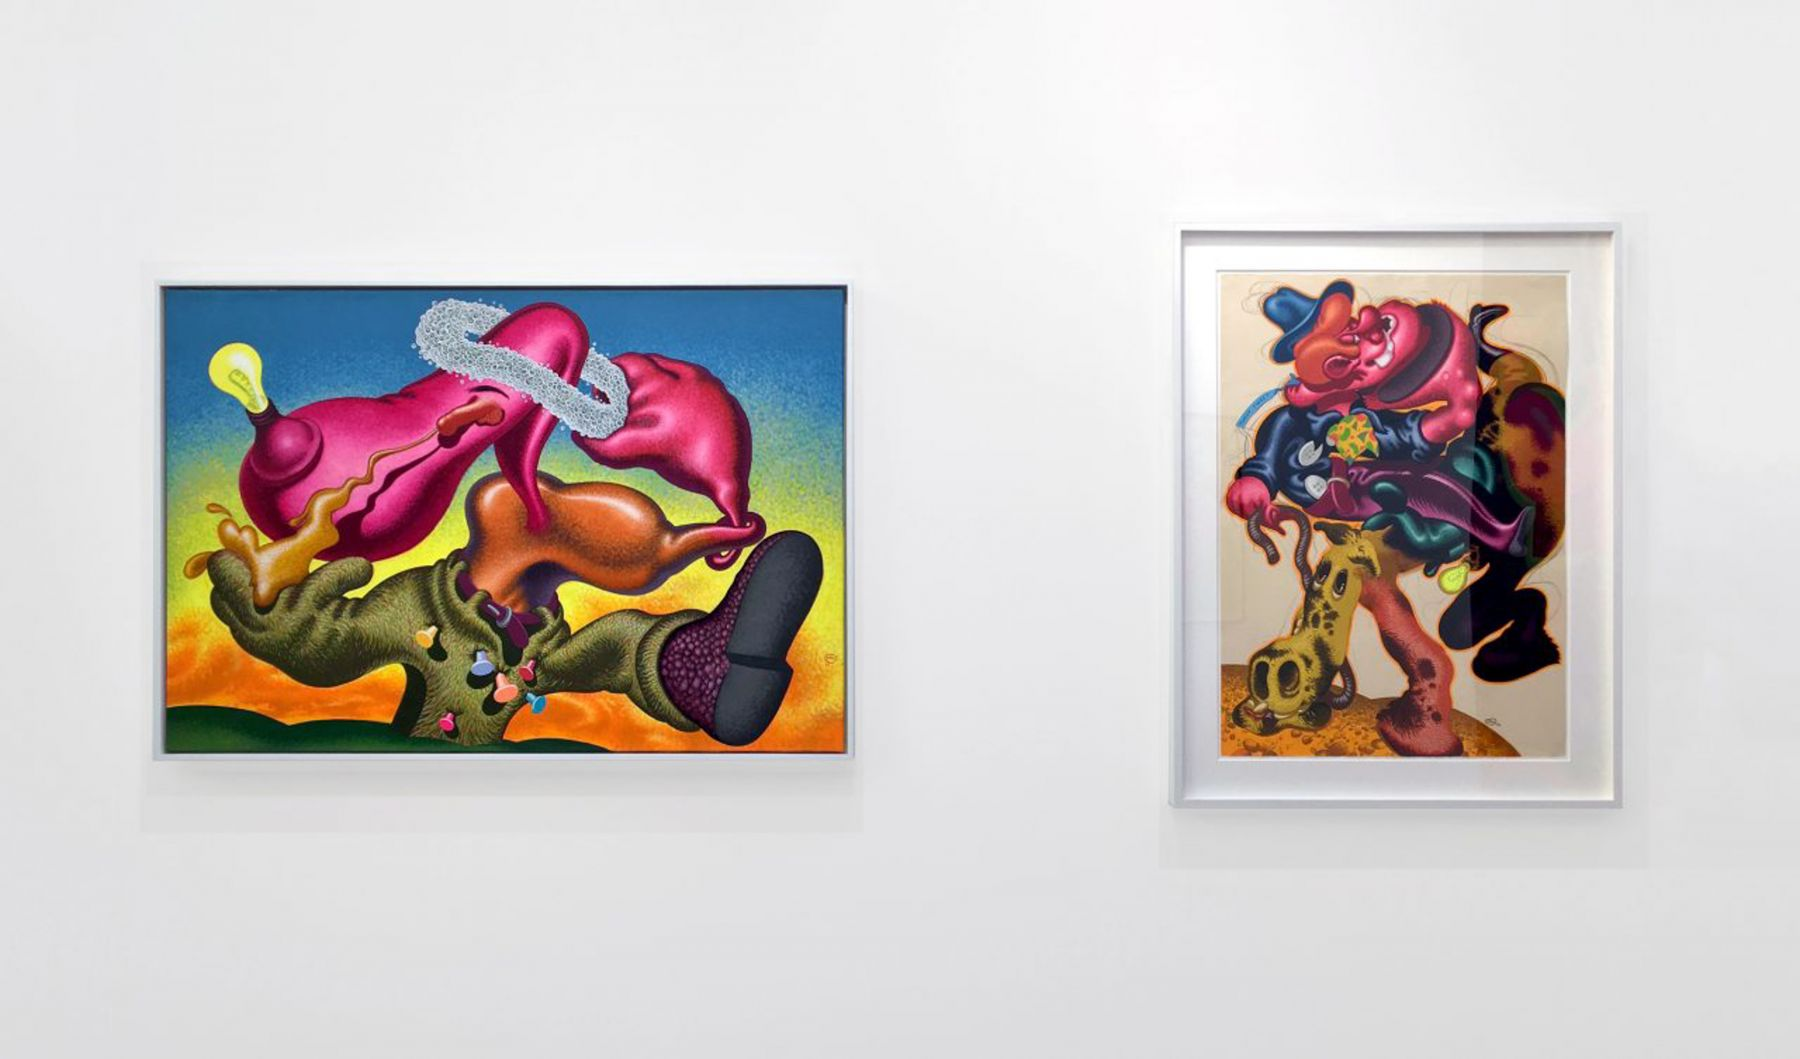 Installation view of Peter Saul: Important Early Works, at FIAC, Paris, 2017